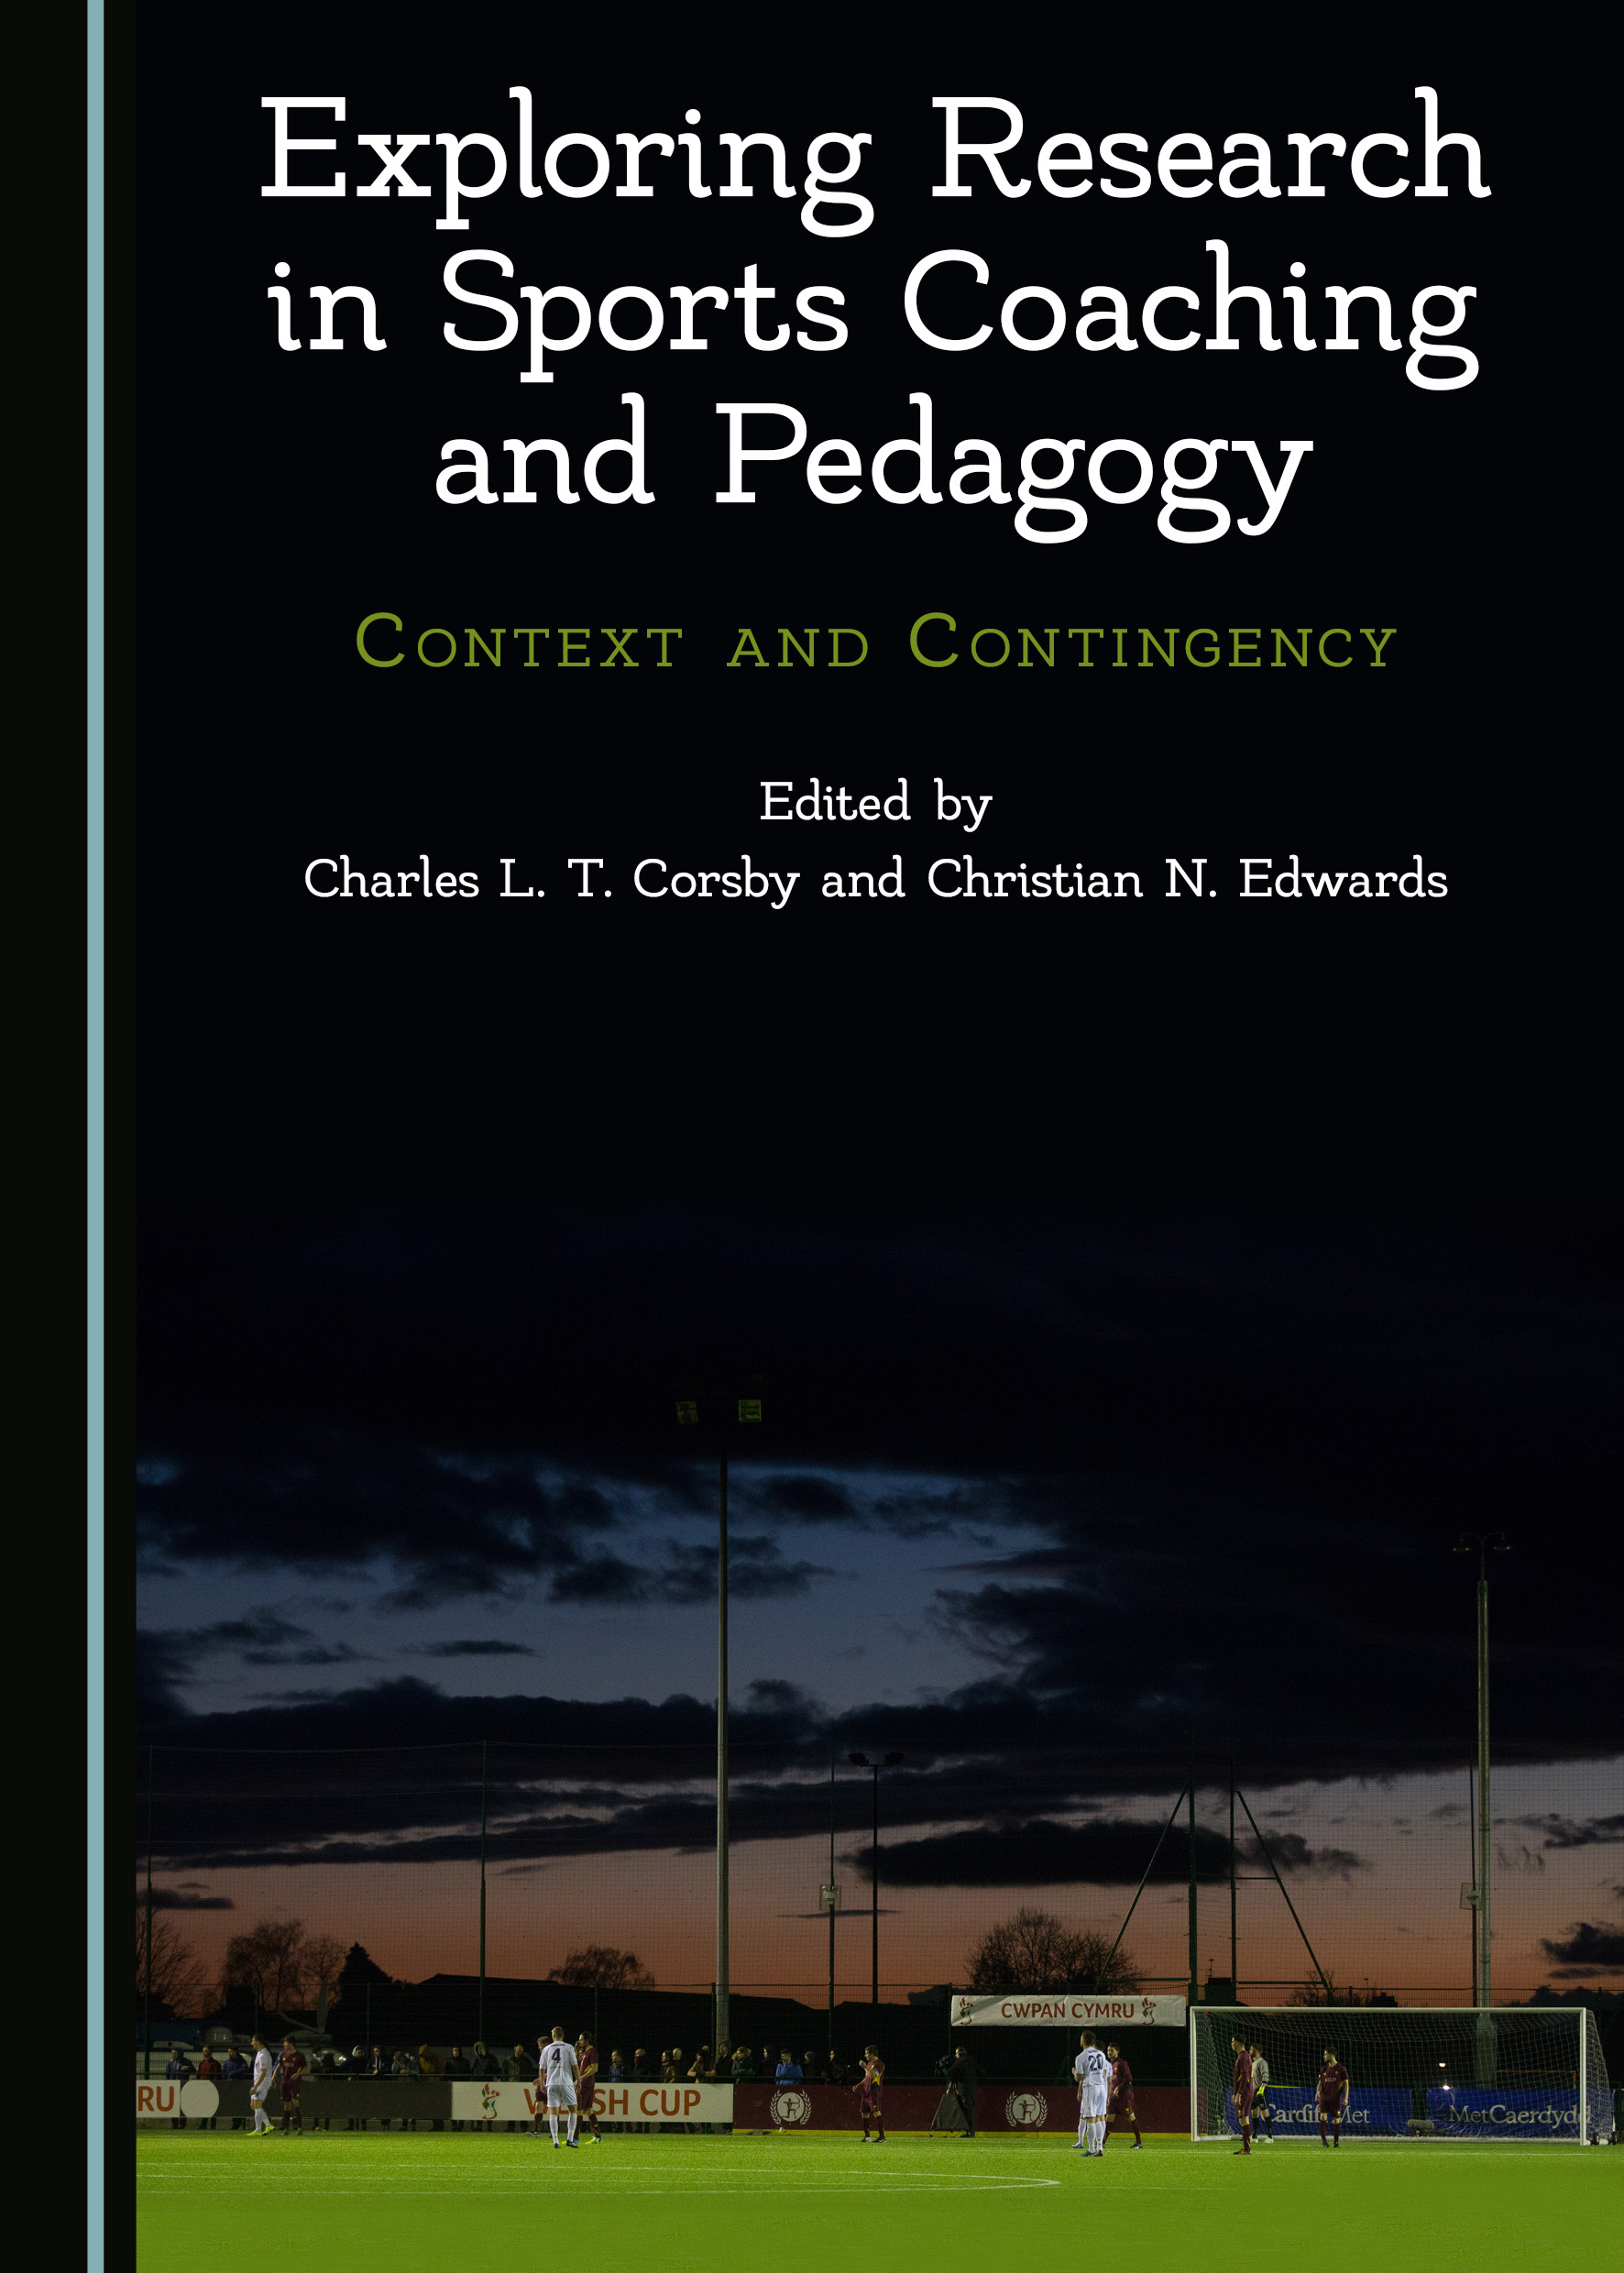 Exploring Research in Sports Coaching and Pedagogy: Context and Contingency